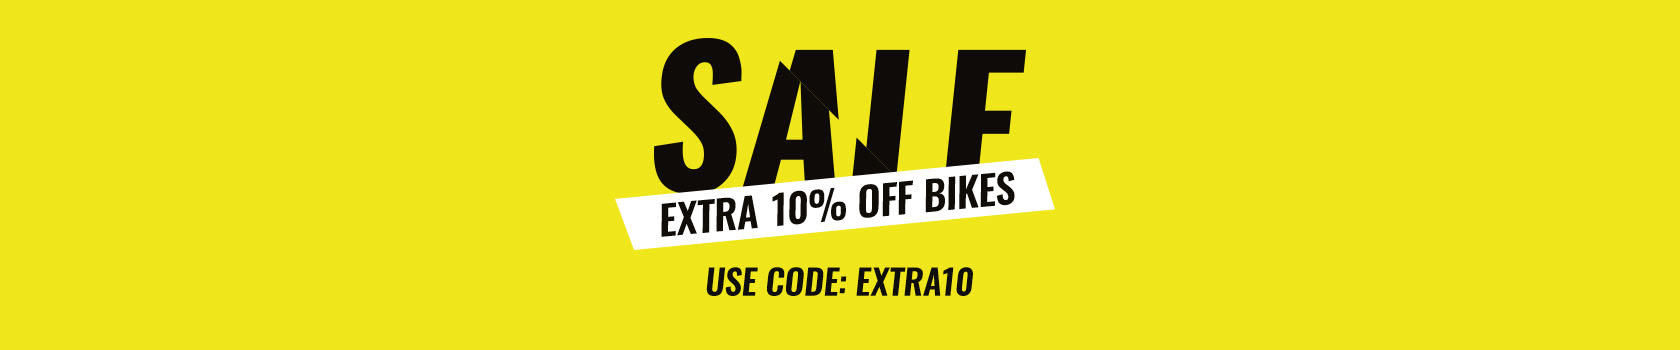 Up to 35% off Specialized, Giant, Cube and Liv bikes at Cycle Surgery